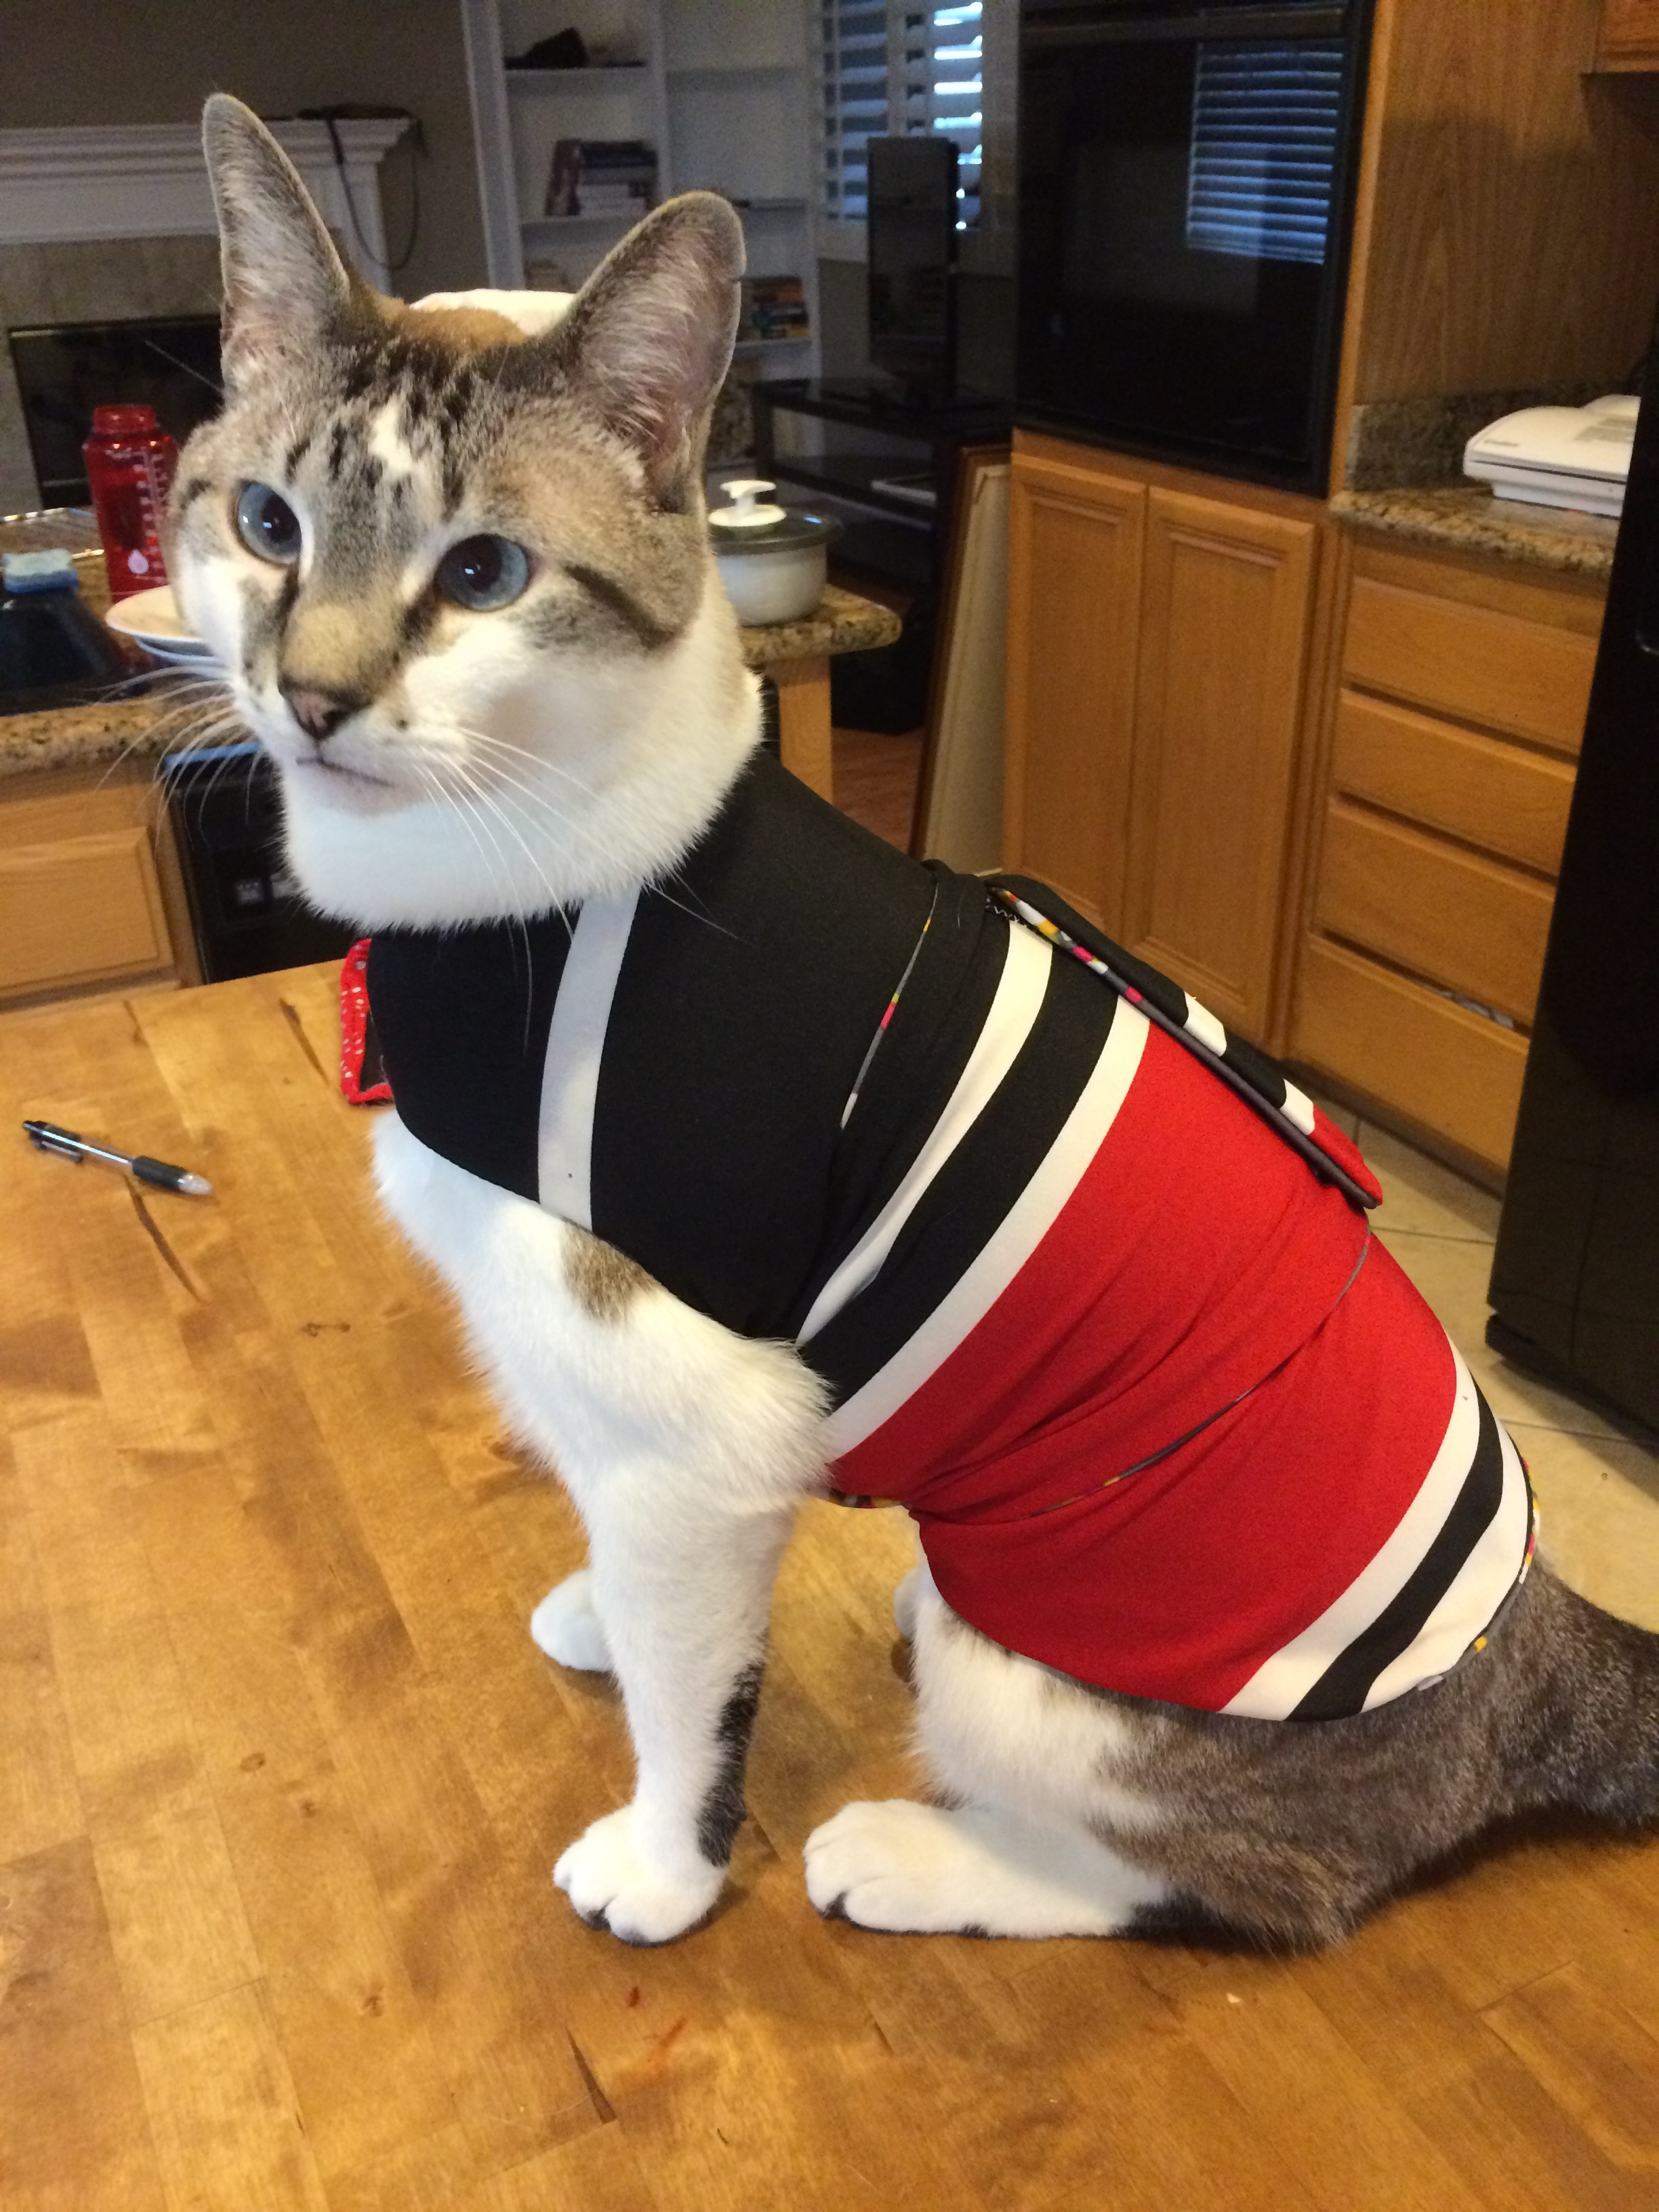 Milo in his red, black, and white thundershirt! Its the same material as my first skirt. I need to get a picture of us together all matchy matchy!